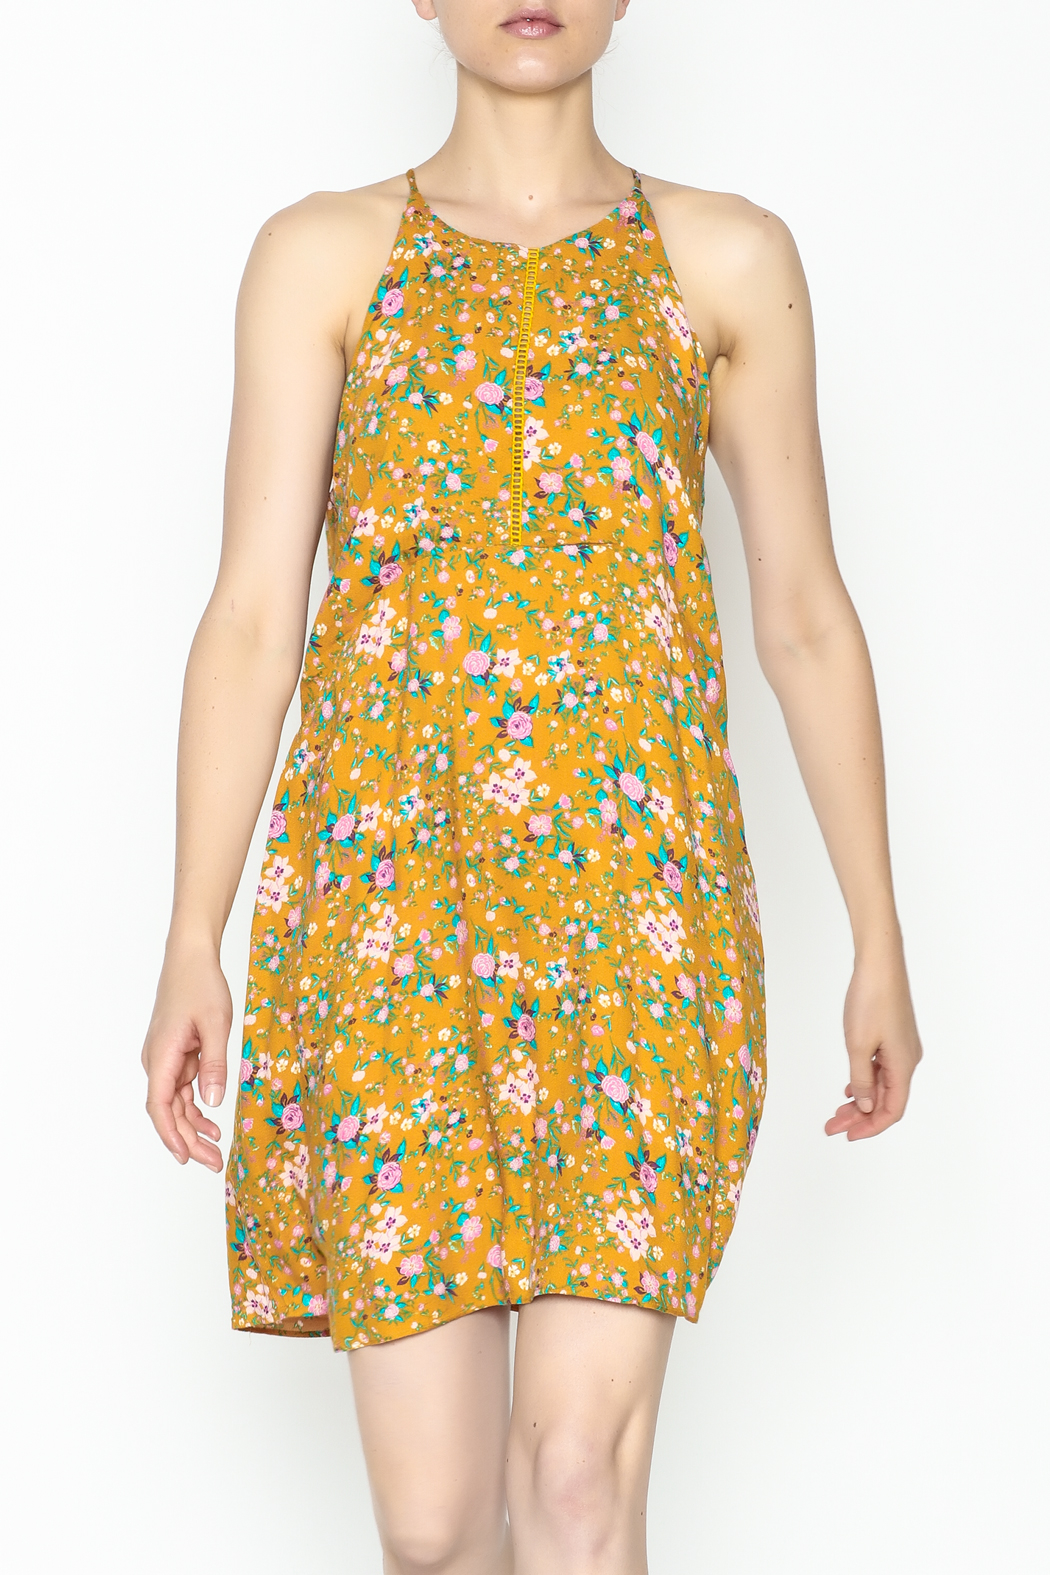 Everly Yellow Floral Shift Dress - Main Image